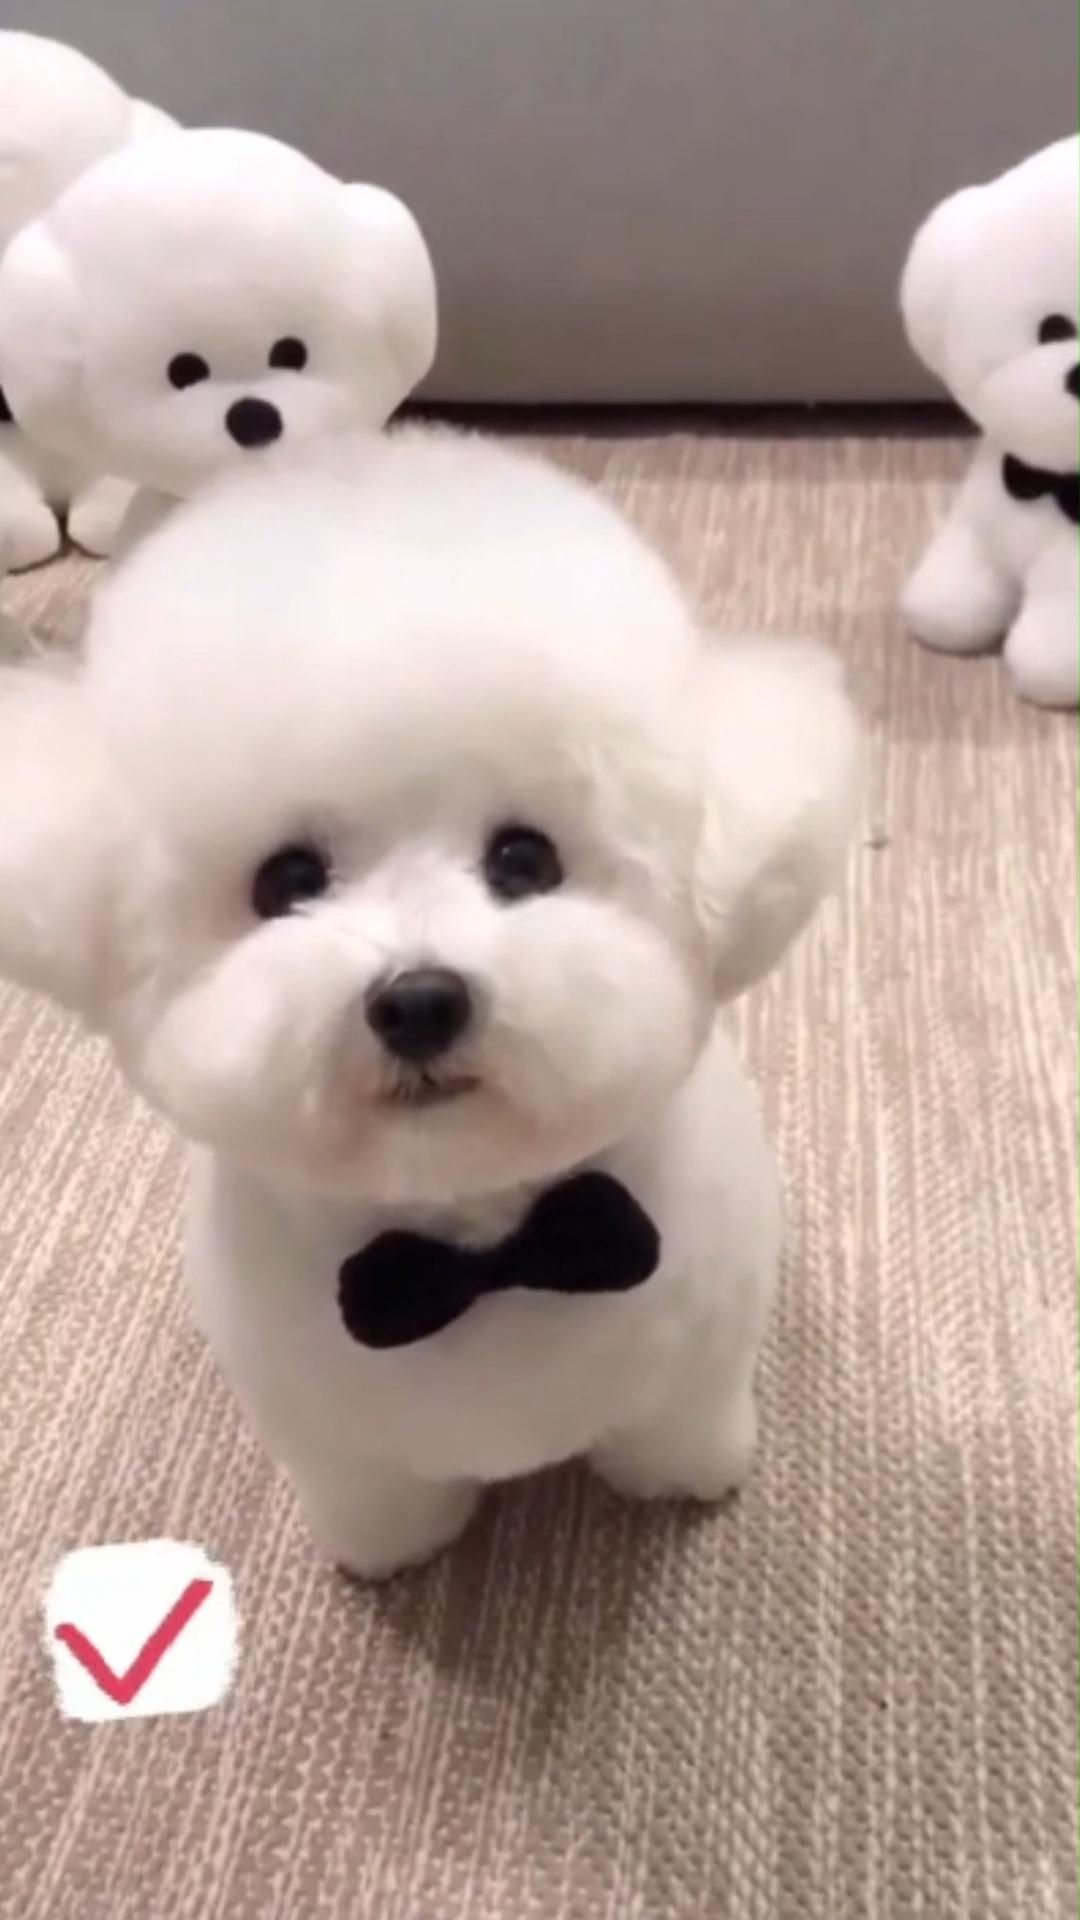 Adorable Puppy Looks Like The Toys